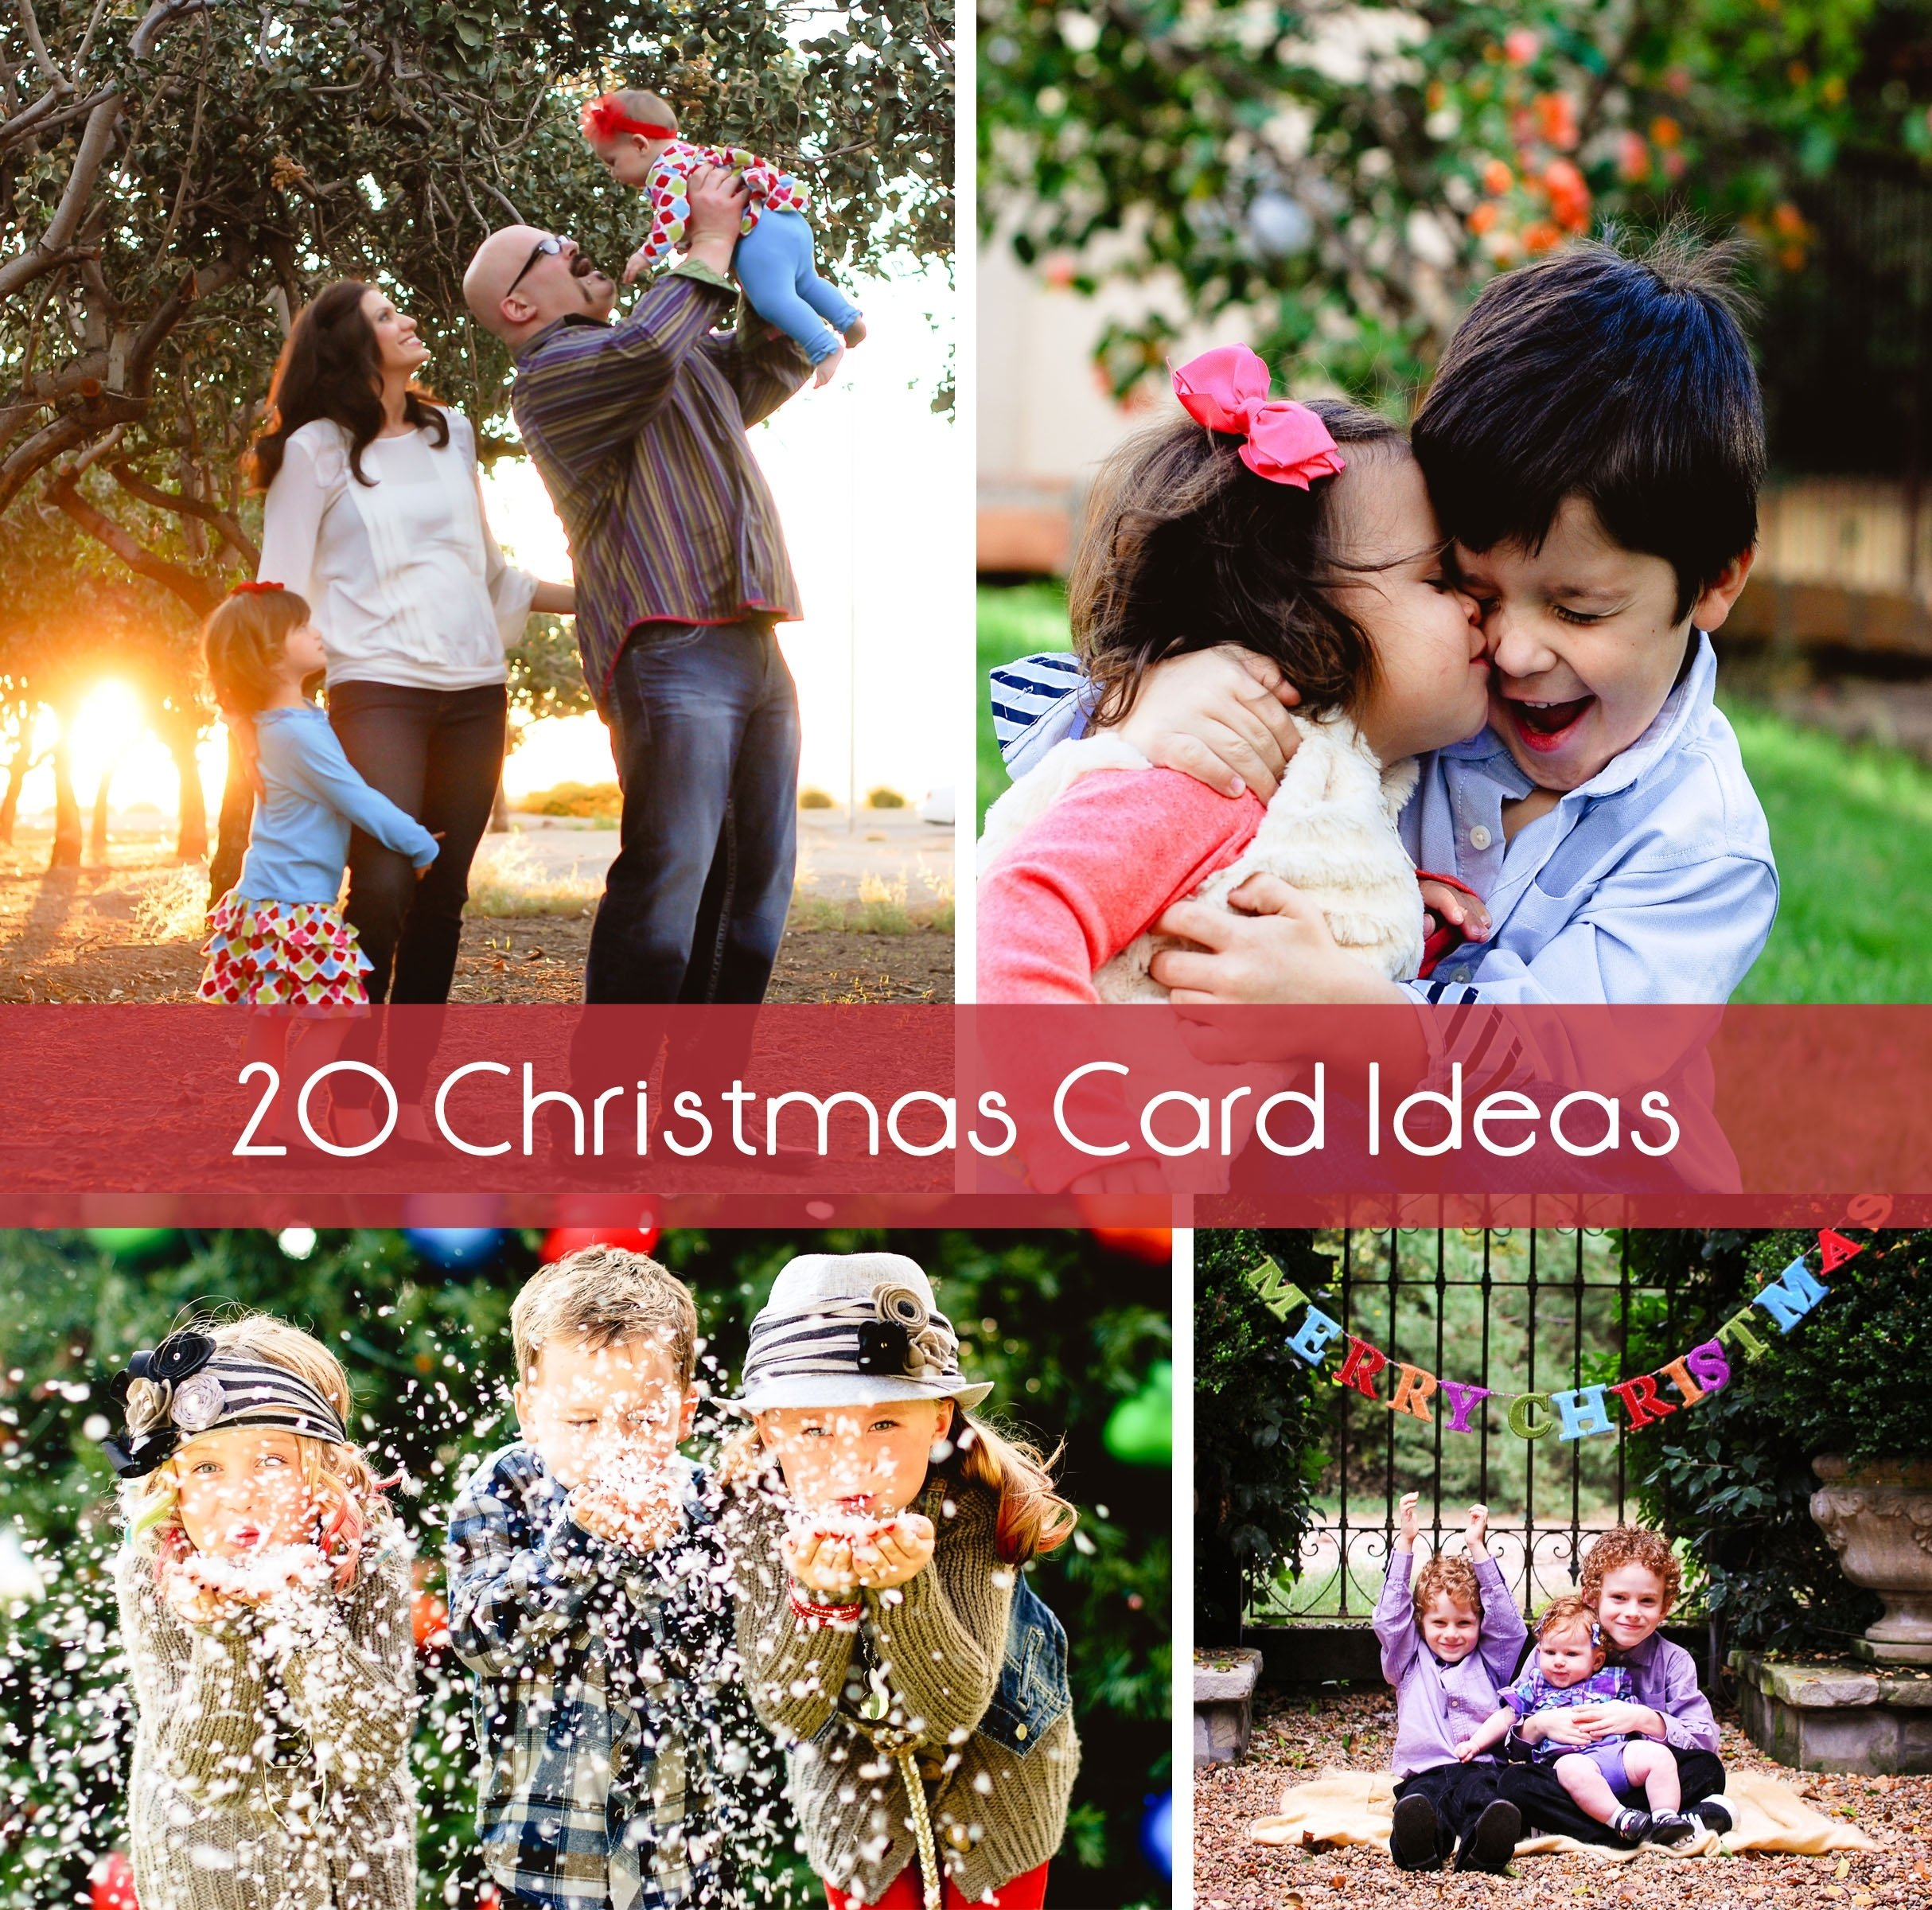 10 Fashionable Christmas Card Picture Ideas Kids 20 christmas card ideas 5 2020